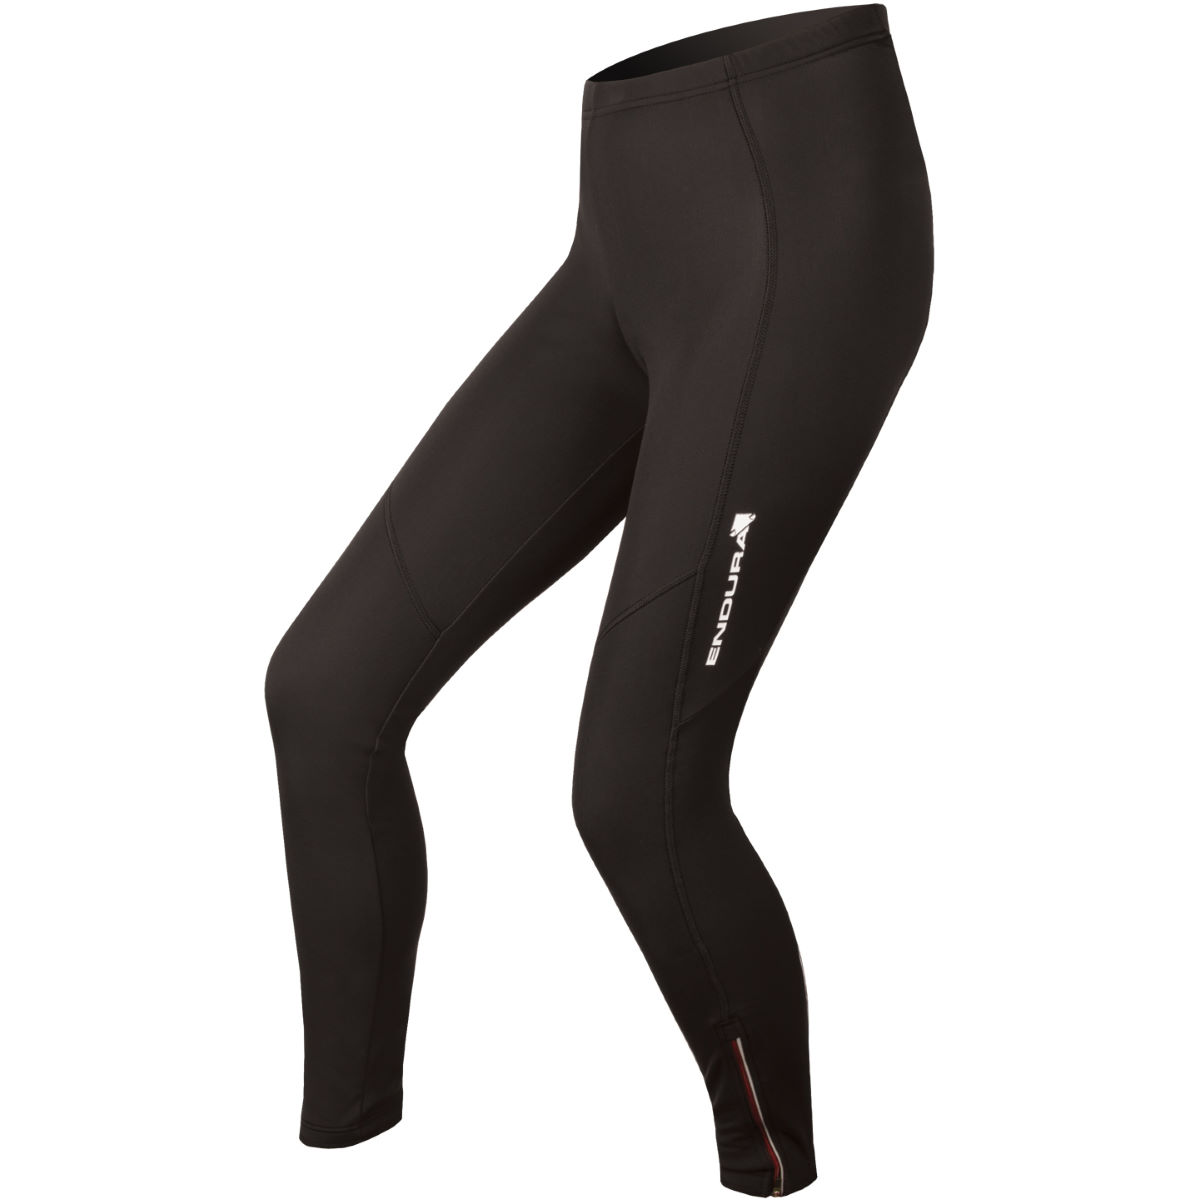 Cuissard long Femme Endura Thermolite® - S Noir  Collants